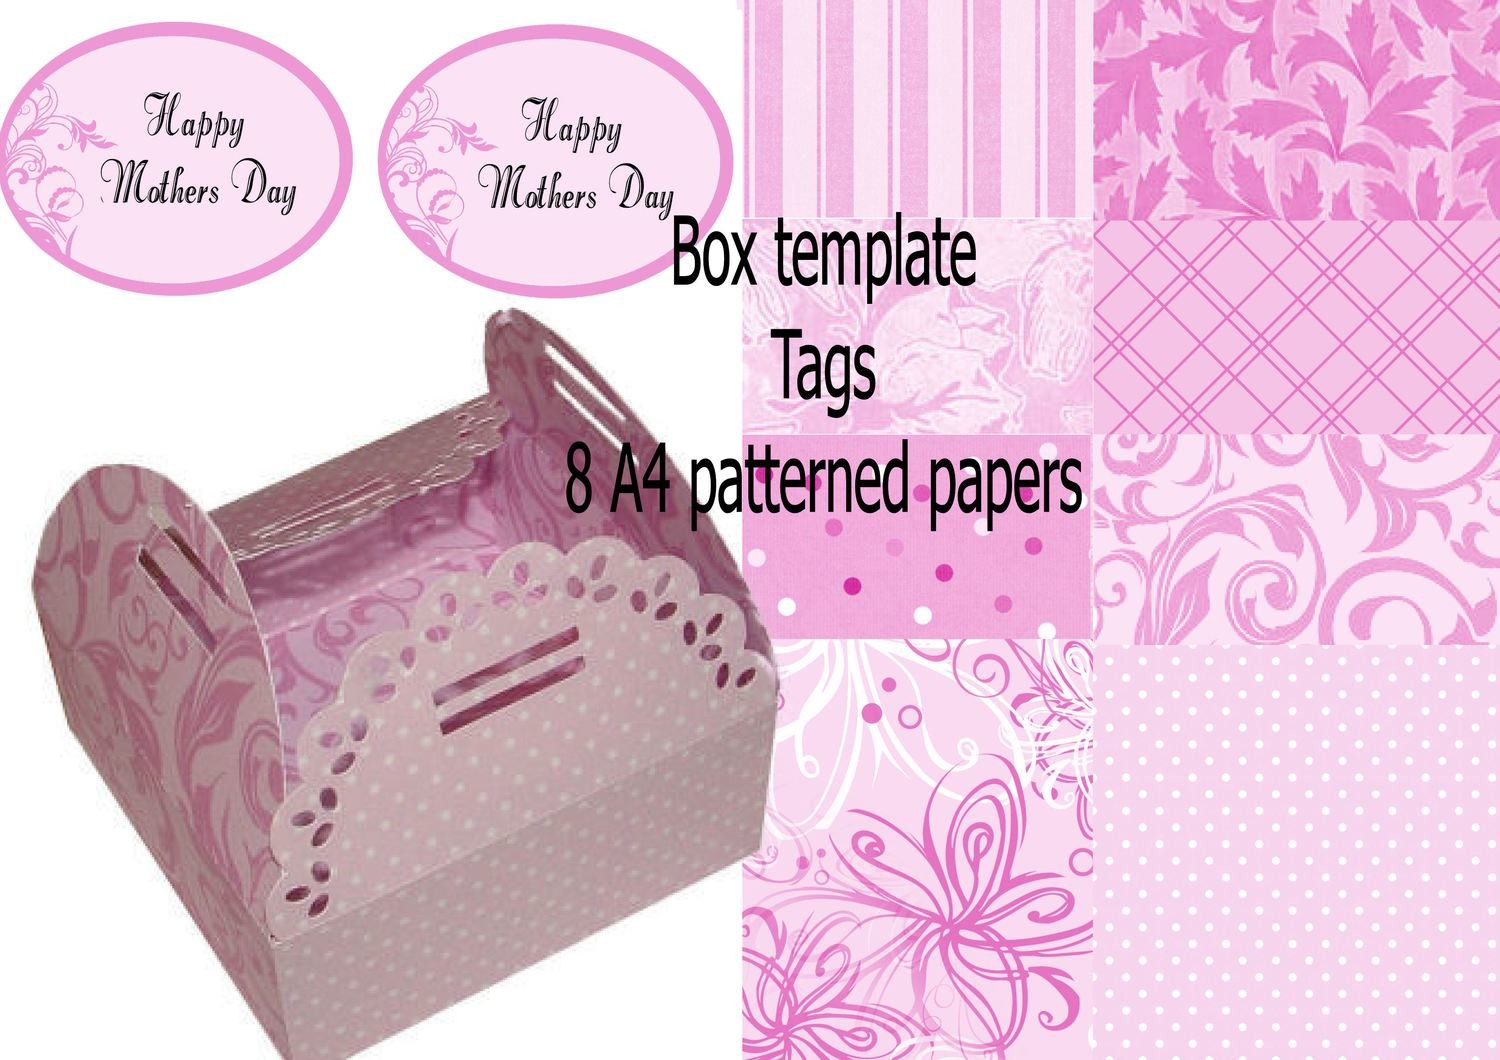 Chocolate box No 1 - inc Mother Mum liners, A4 papers, Print N Cut